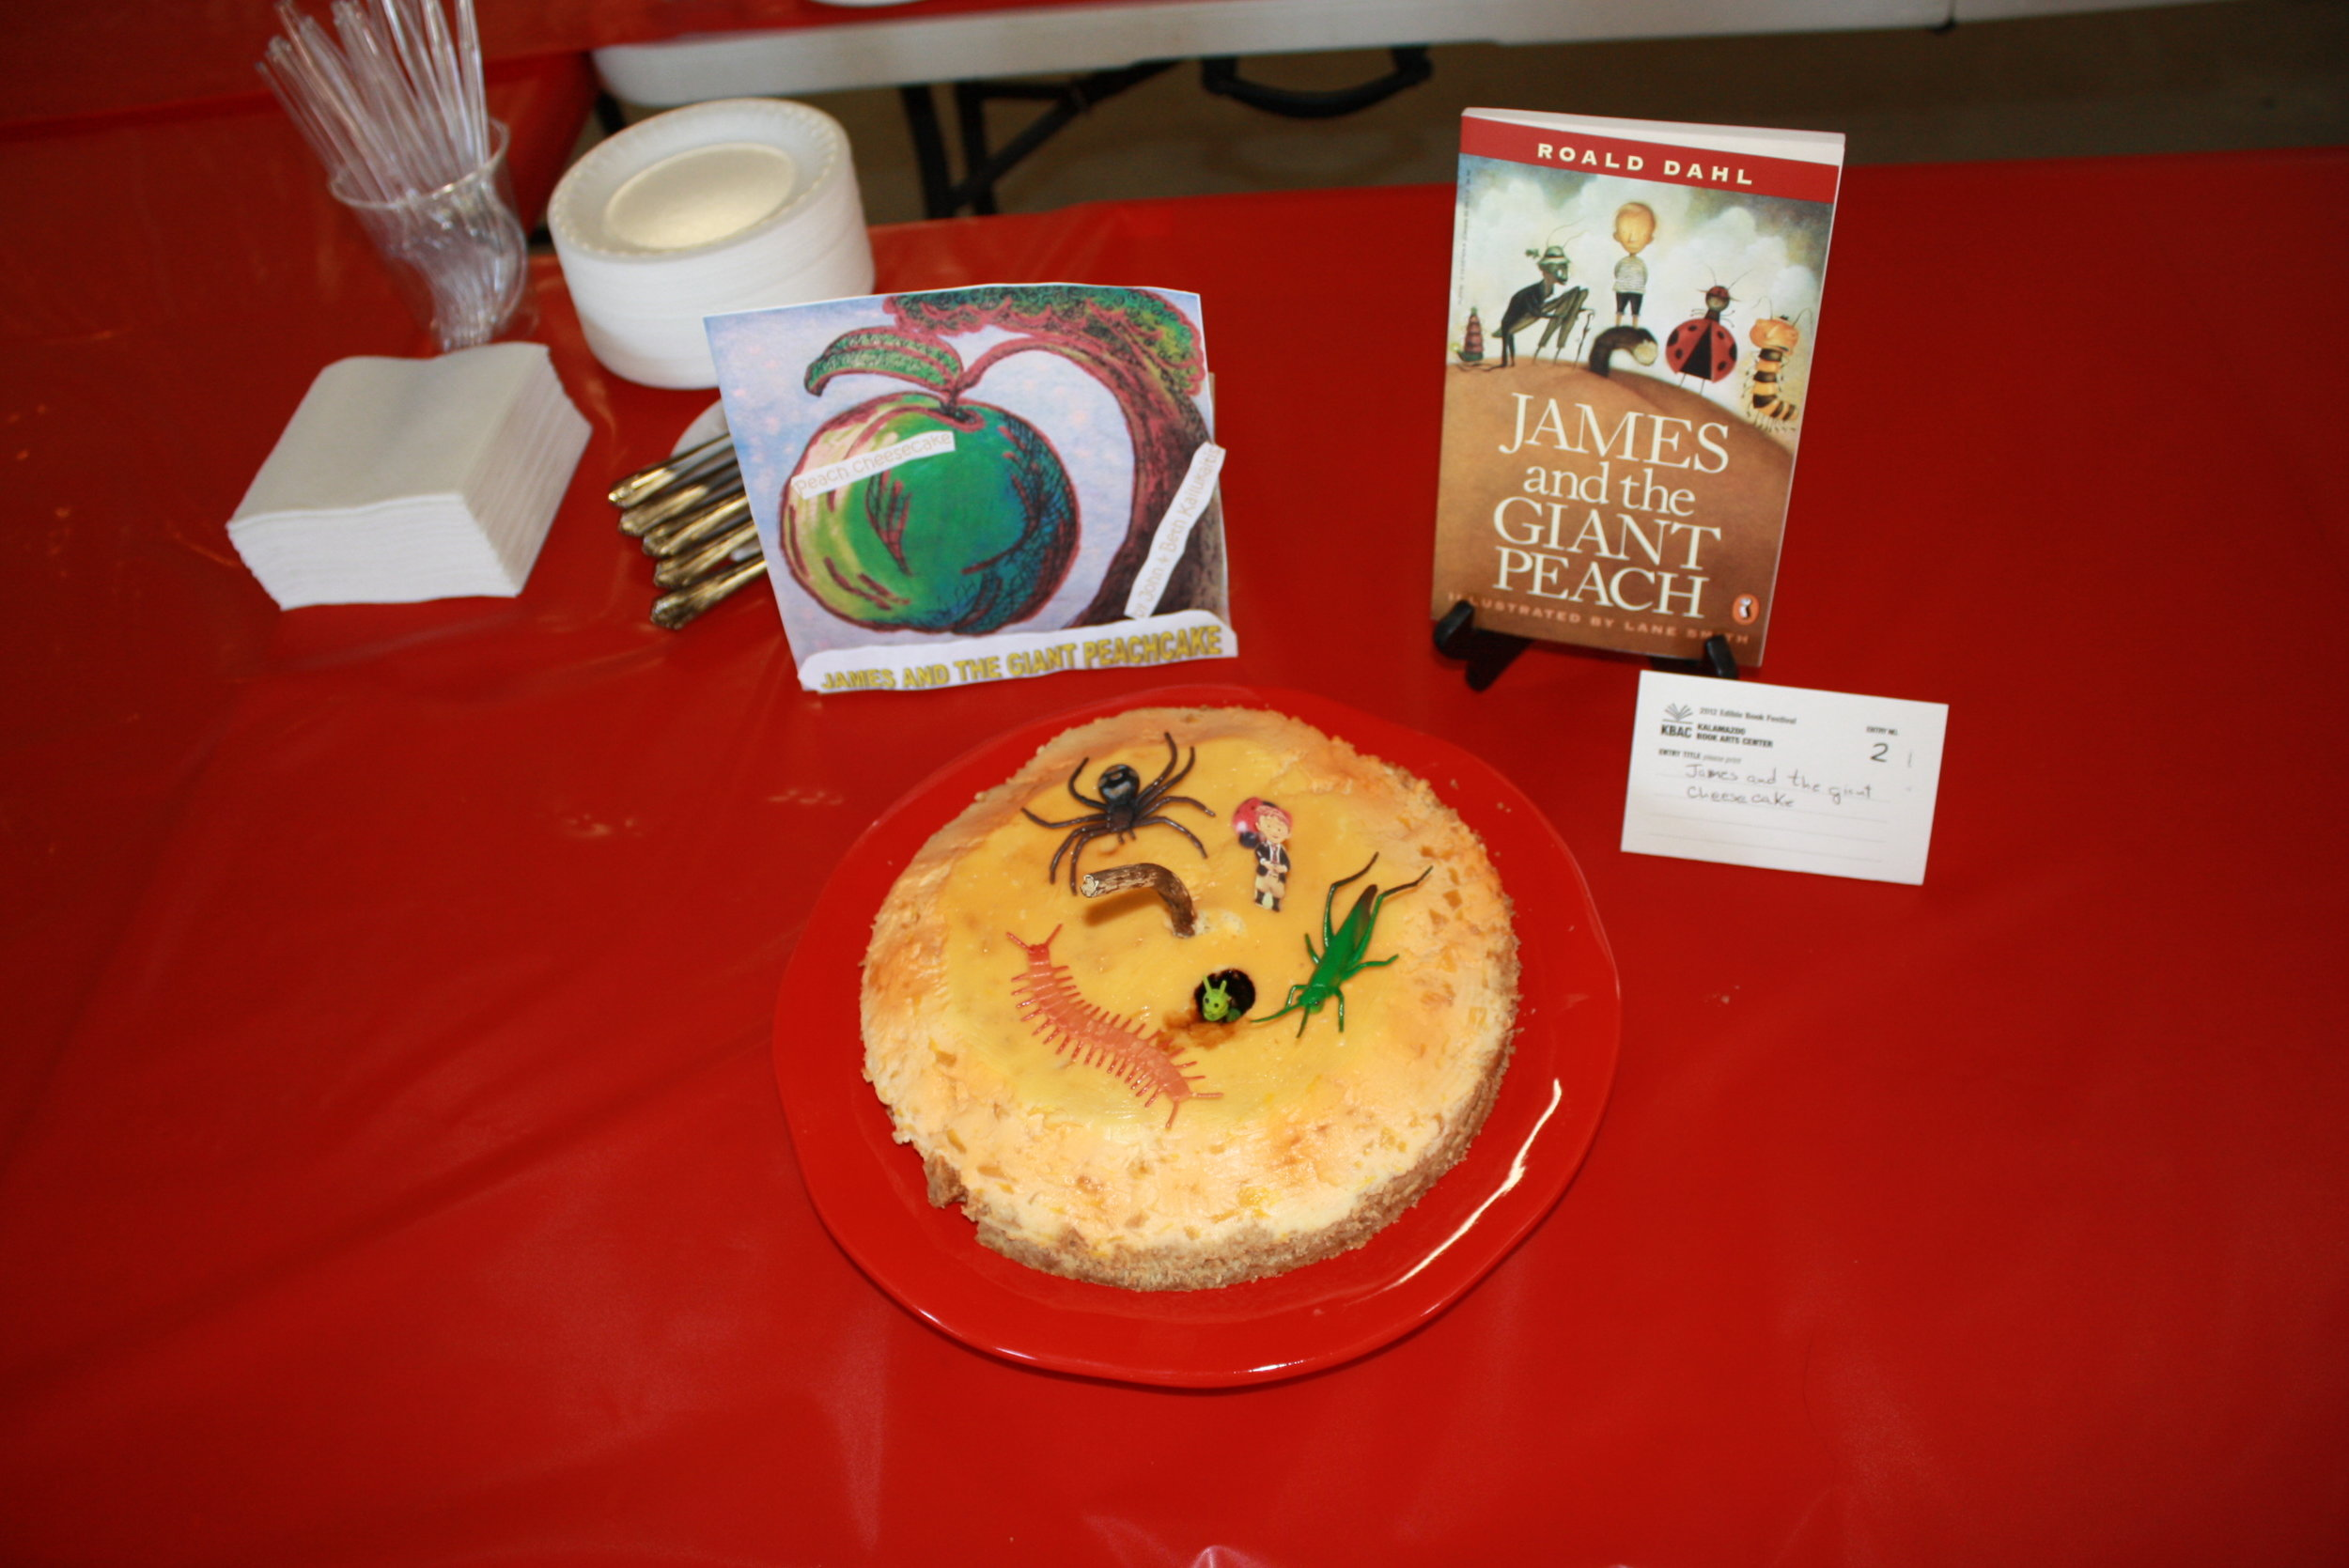 """""""James and the Giant Peach,"""" by Roald Dahl, Created by Beth and John, Edible Book 2012."""